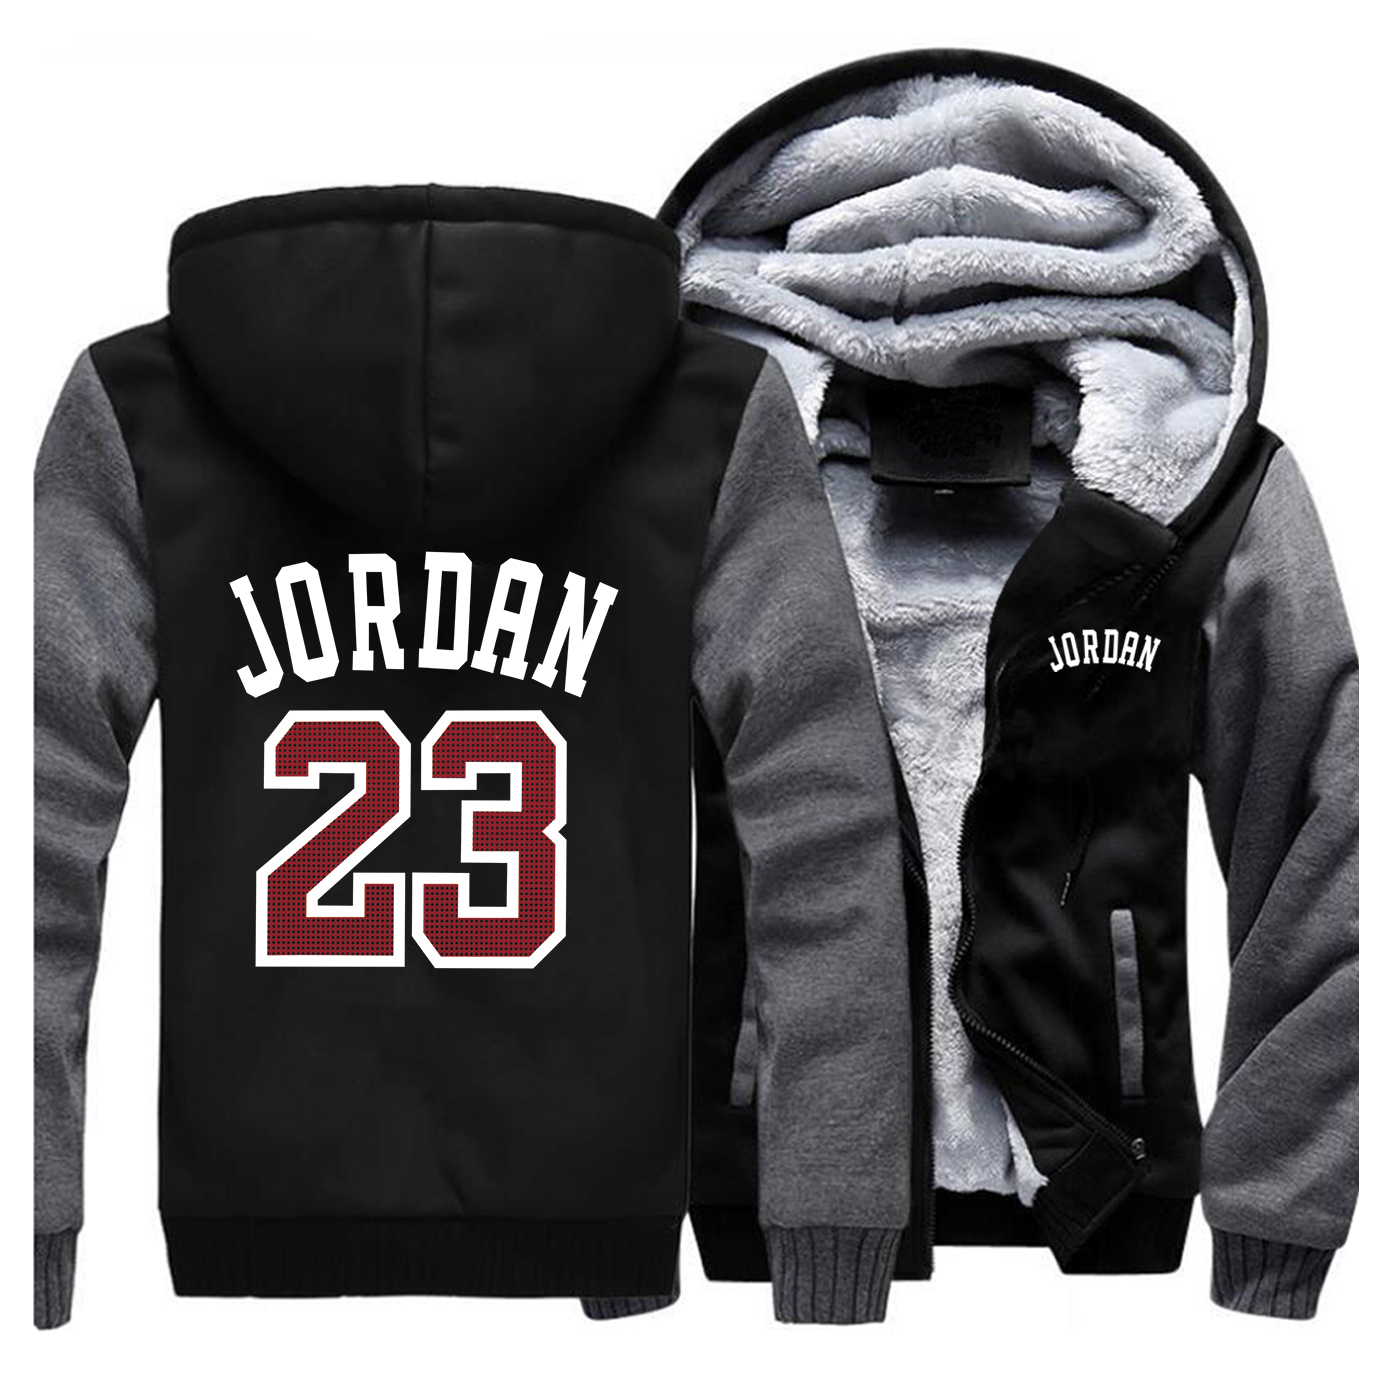 Autumn Winter Men Thick Oversized Hoodies Camouflage Jacket Male Sweatshirts Warm Coats Casual Streetwear Jordan 23 Print Hoody